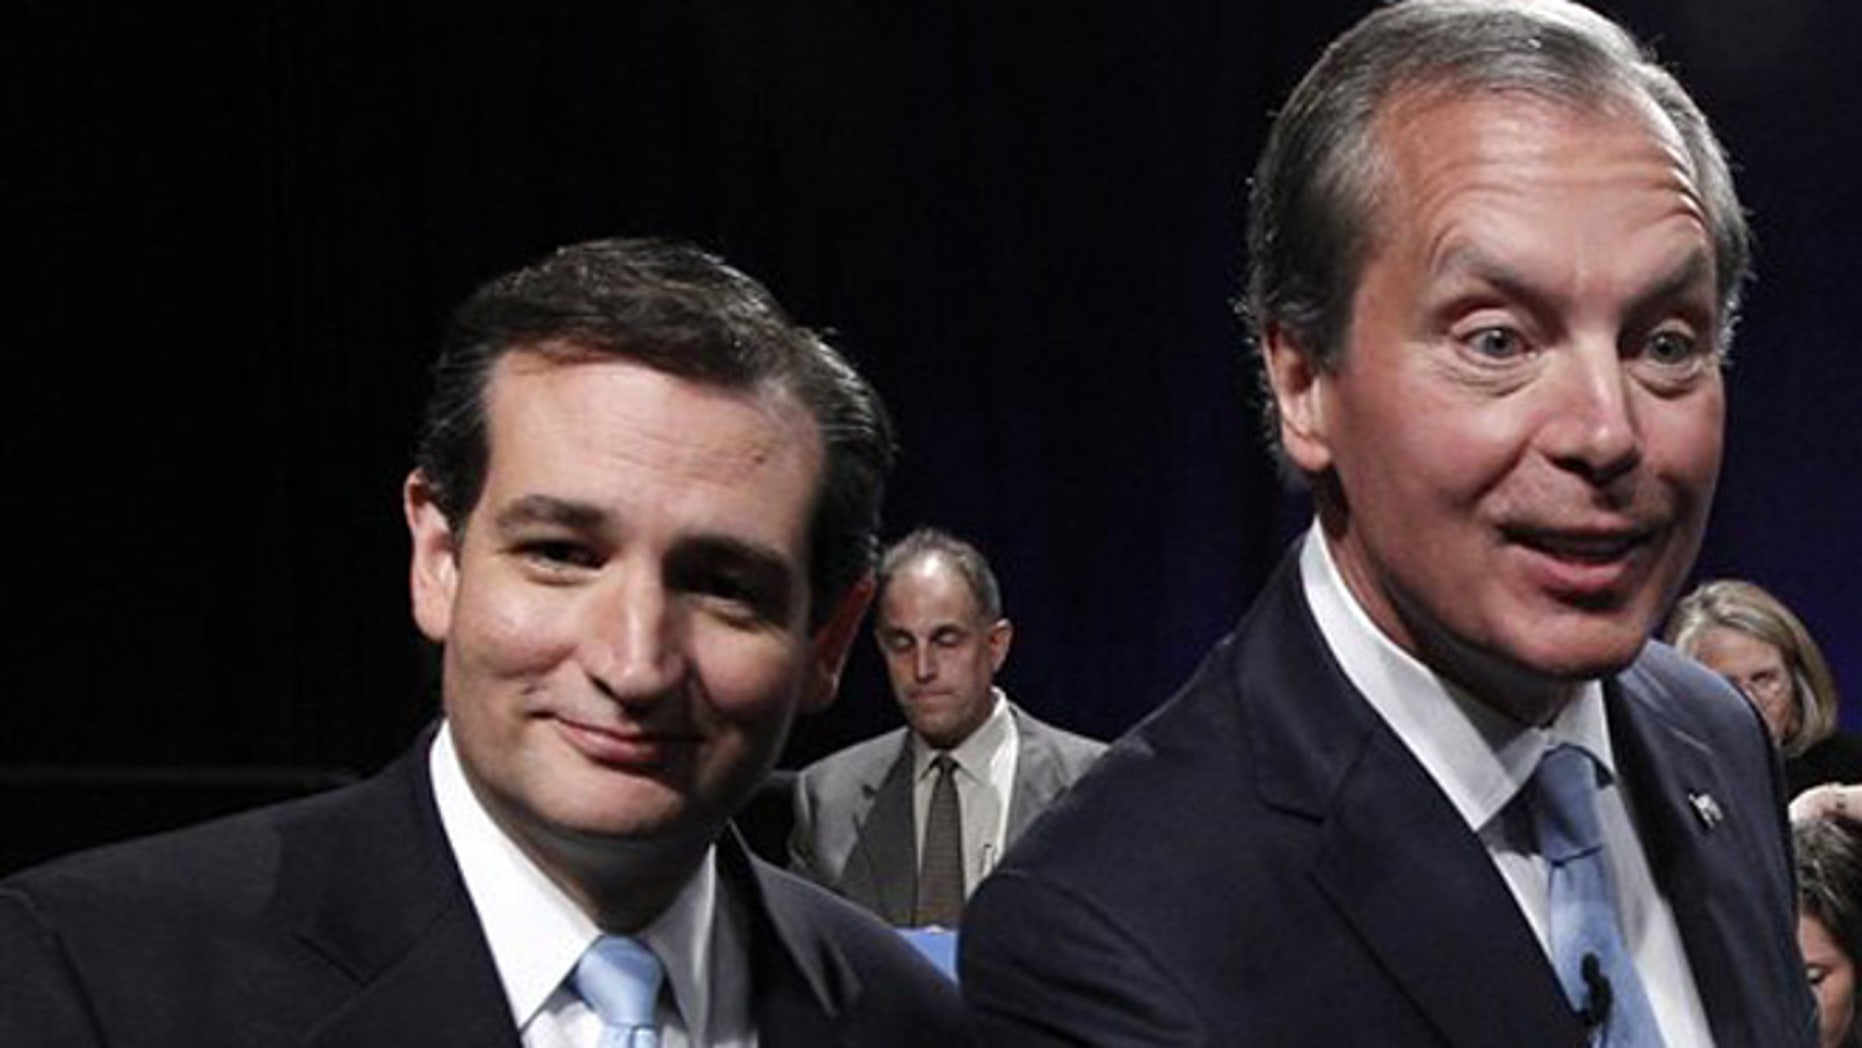 June 22, 2012: Texas Senate candidates Ted Cruz, left, and Texas Lt. Gov. David Dewhurst , right, are seen after their televised debate in Dallas, Texas.